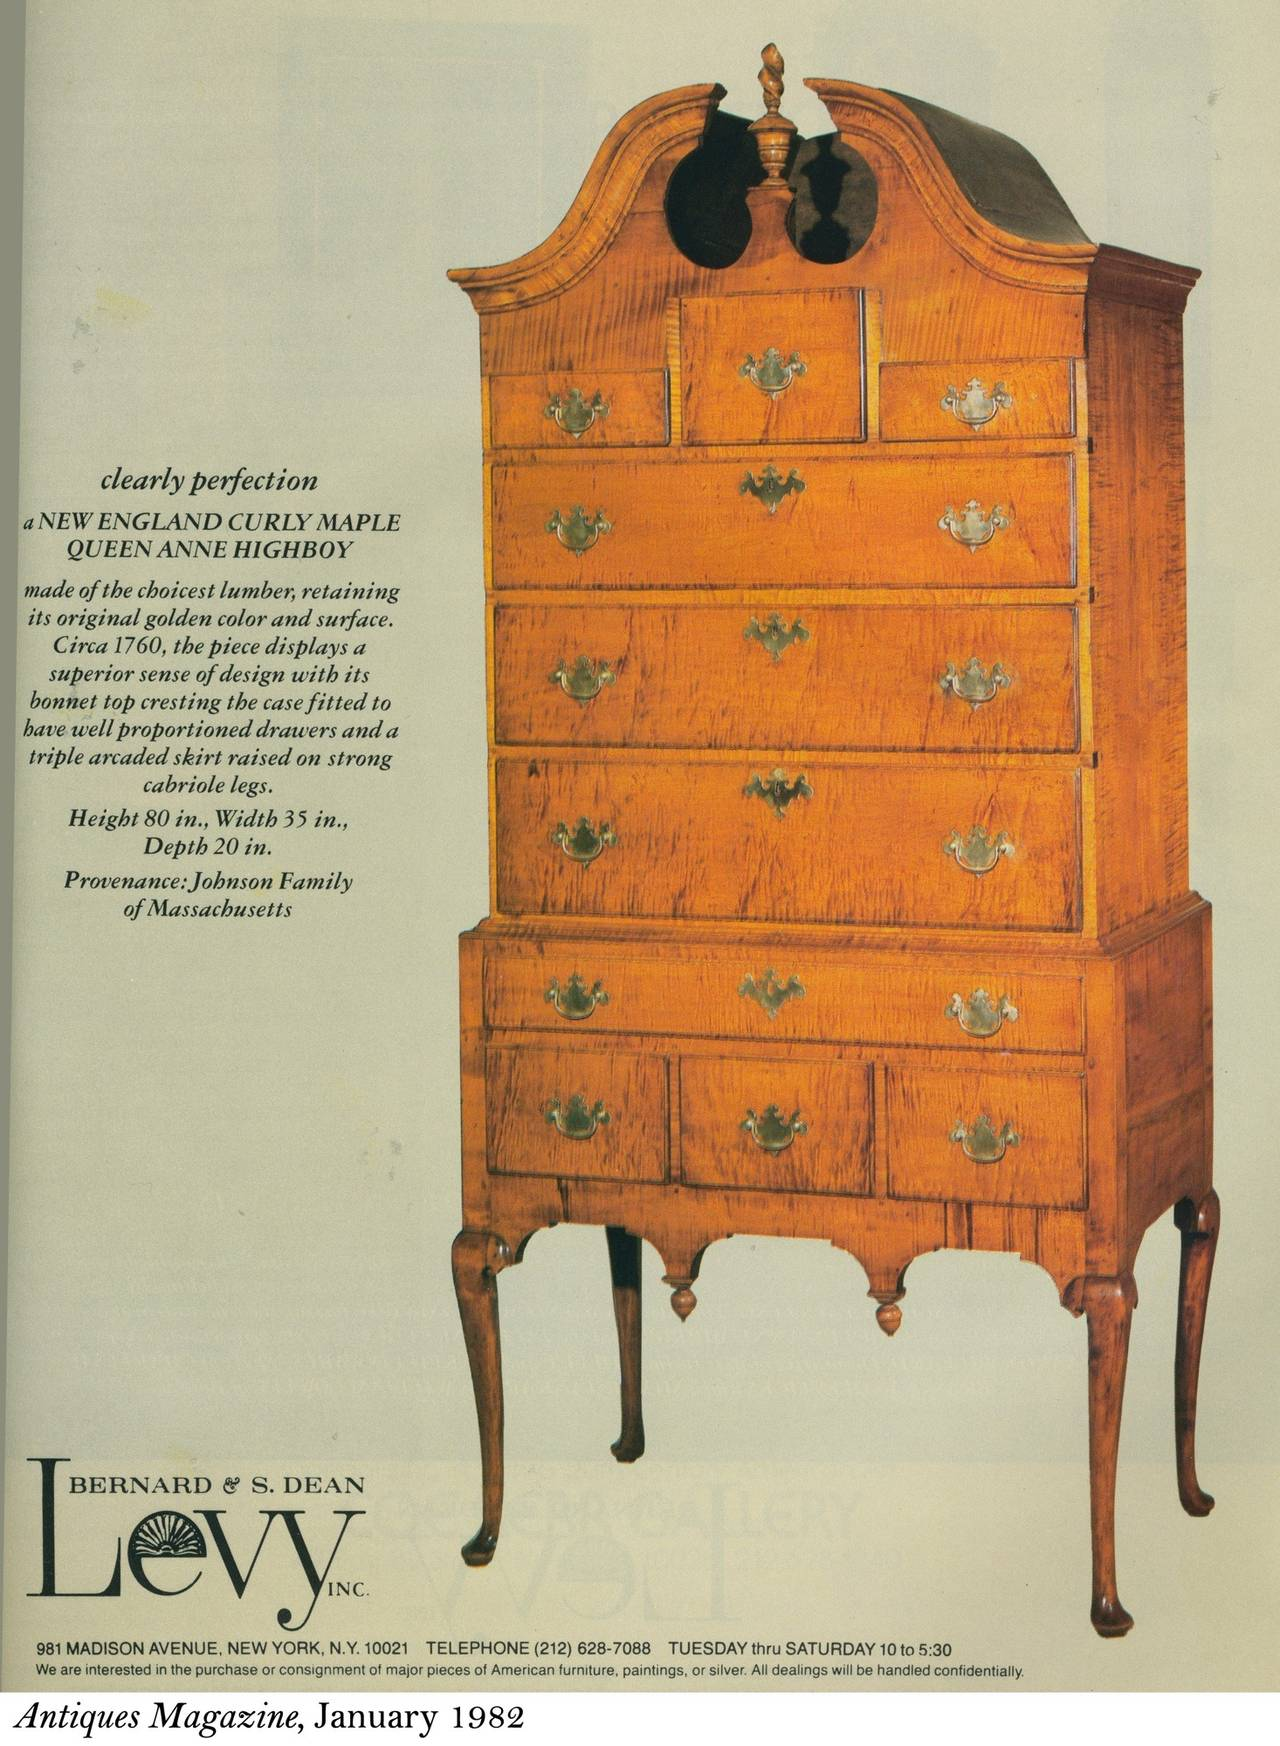 Tiger Maple Queen Anne High Chest with Bonnet Top, Massachusetts For Sale 4